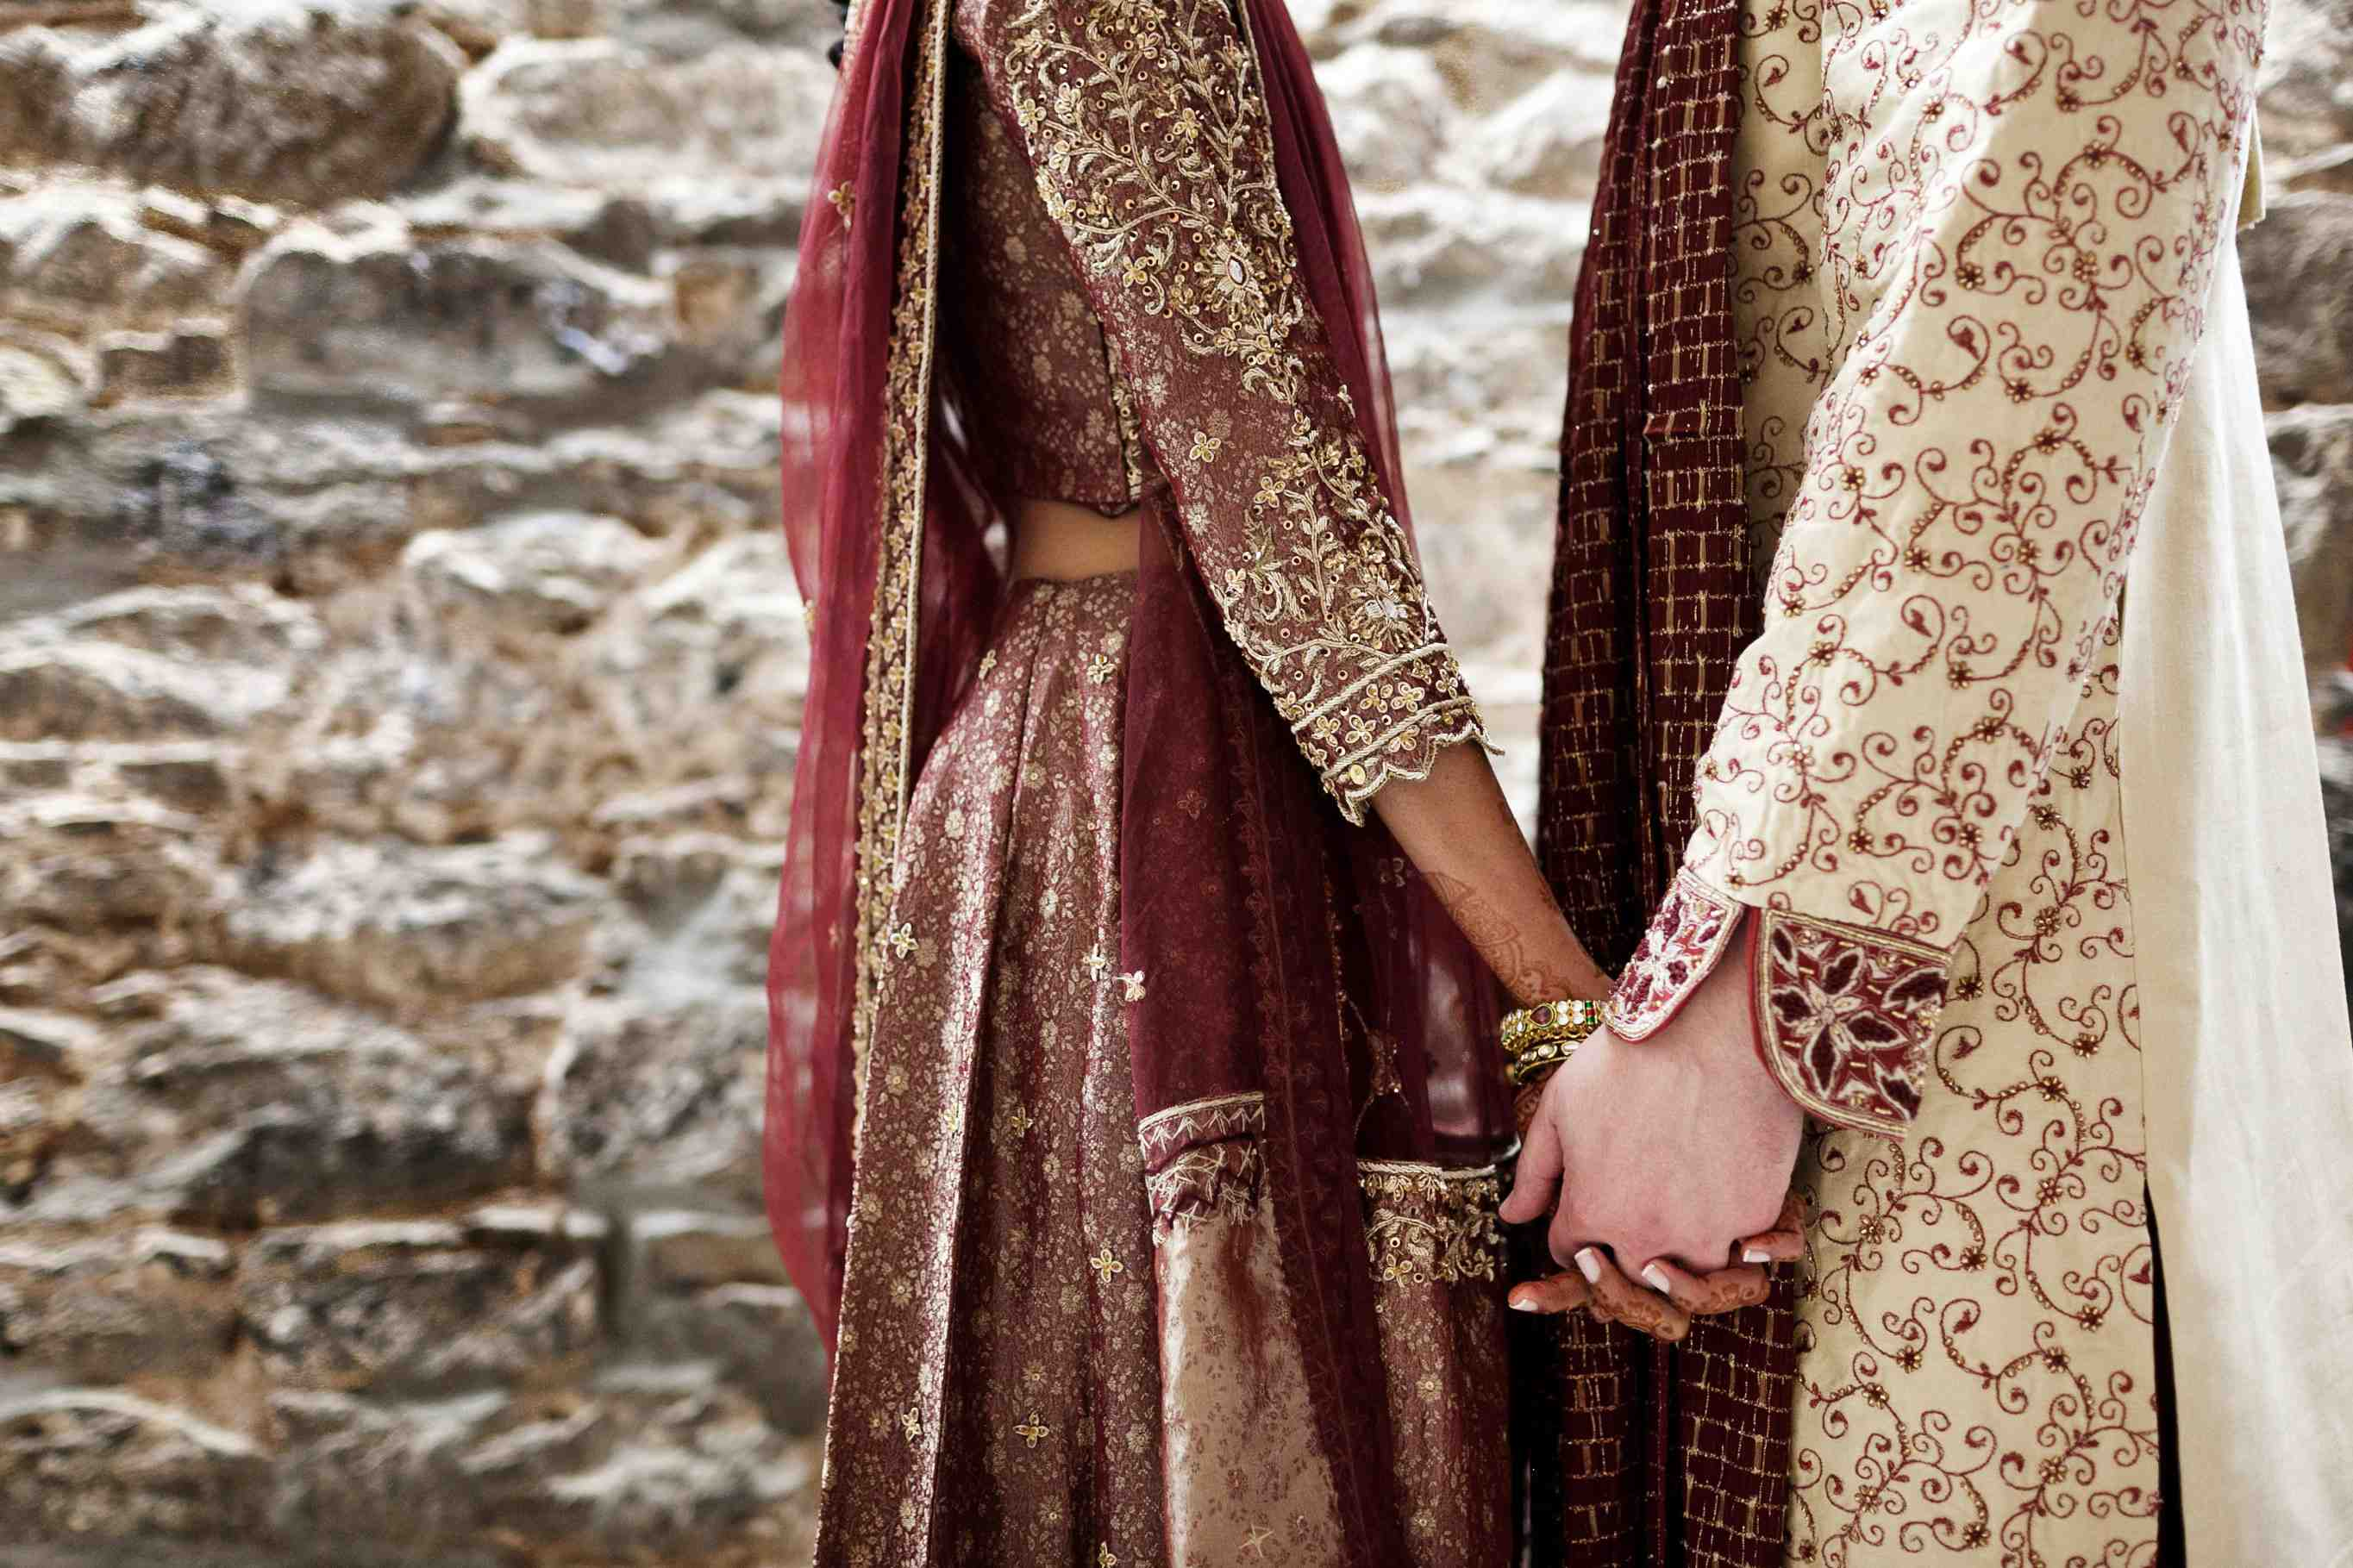 close-up shot of south asian bride in sari holding hands with caucasian groom in south asian wedding attire